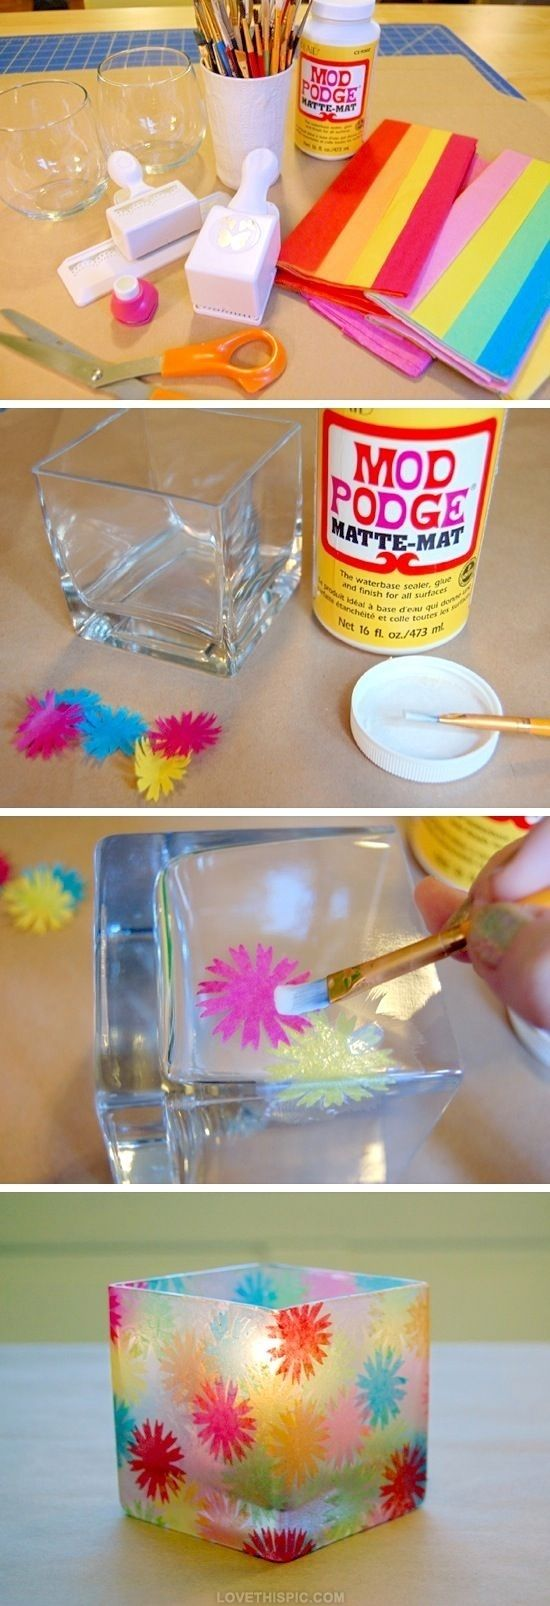 How to make scrapbook about yourself - Make Your Own Stained Glass Candle Holders Using Tissue Paper Scrapbook Punches And Modge